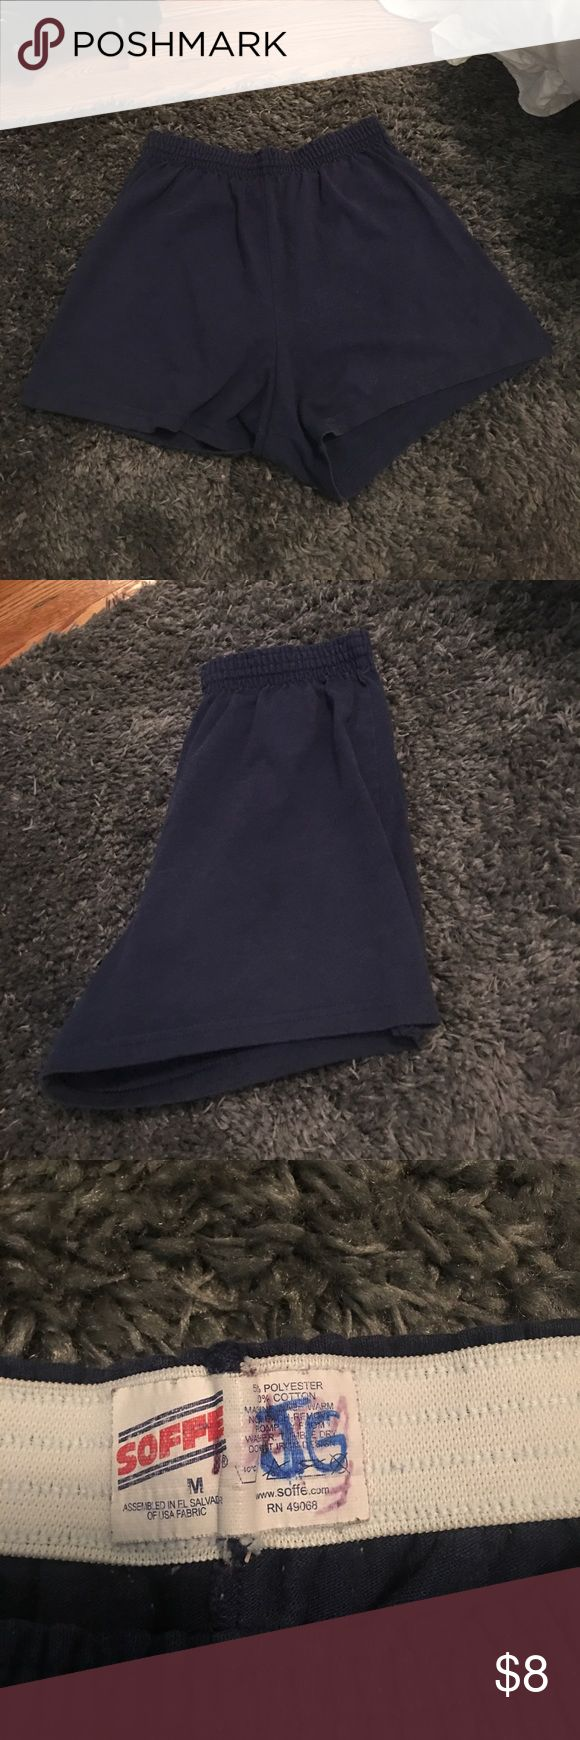 Soffee shorts Navy blue SOFFEE shorts. EXCELLENT CONDITION. initials in label. Price reflects. Soffe Shorts